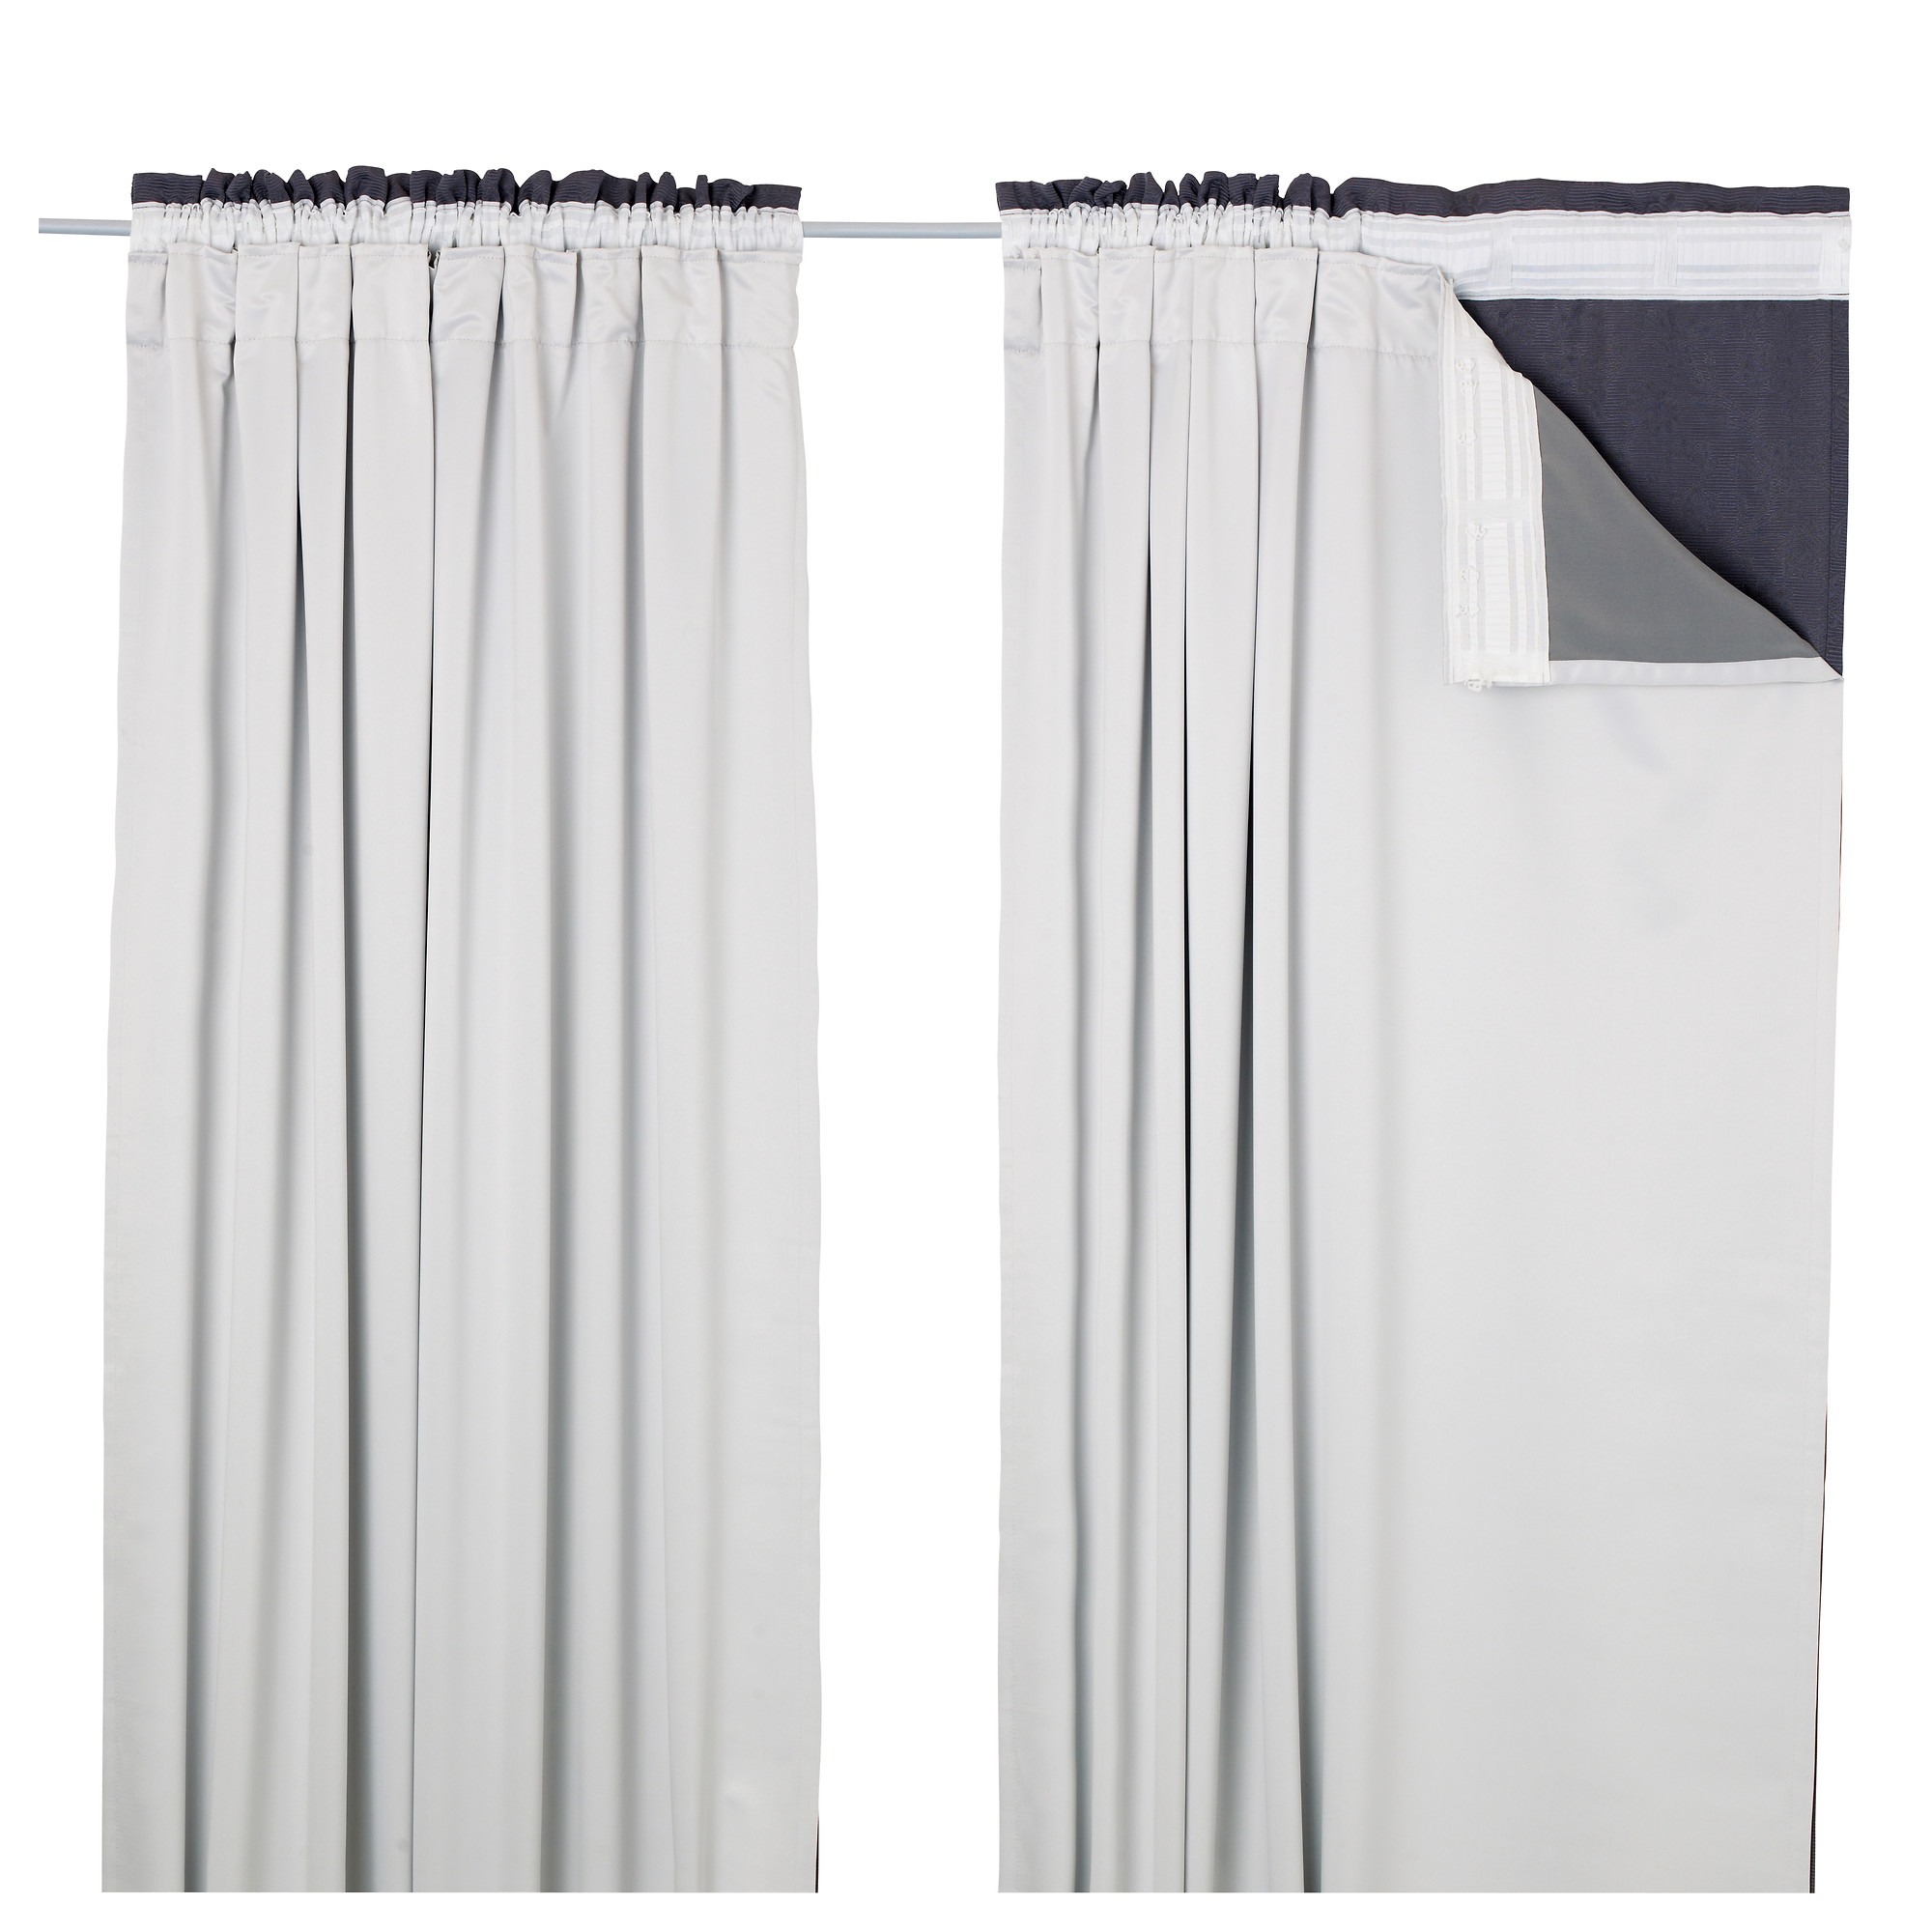 "glansnÄva curtain liners, 1 pair - 56x94 "" - ikea"